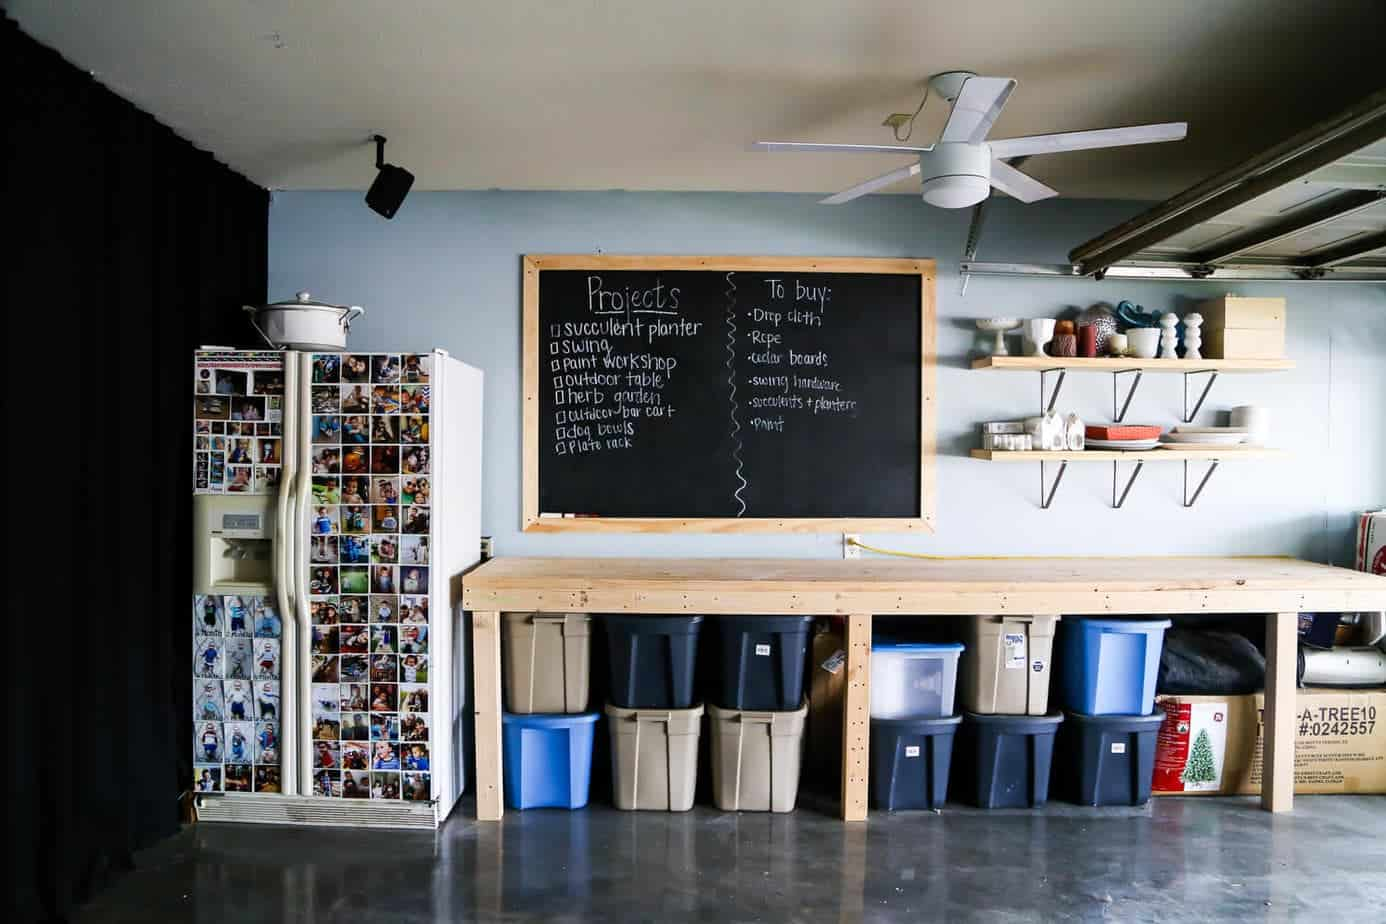 Ideas for how to organize your garage and turn it into a space where you can work on projects, build, and store whatever you need - and keep it looking nice, too!